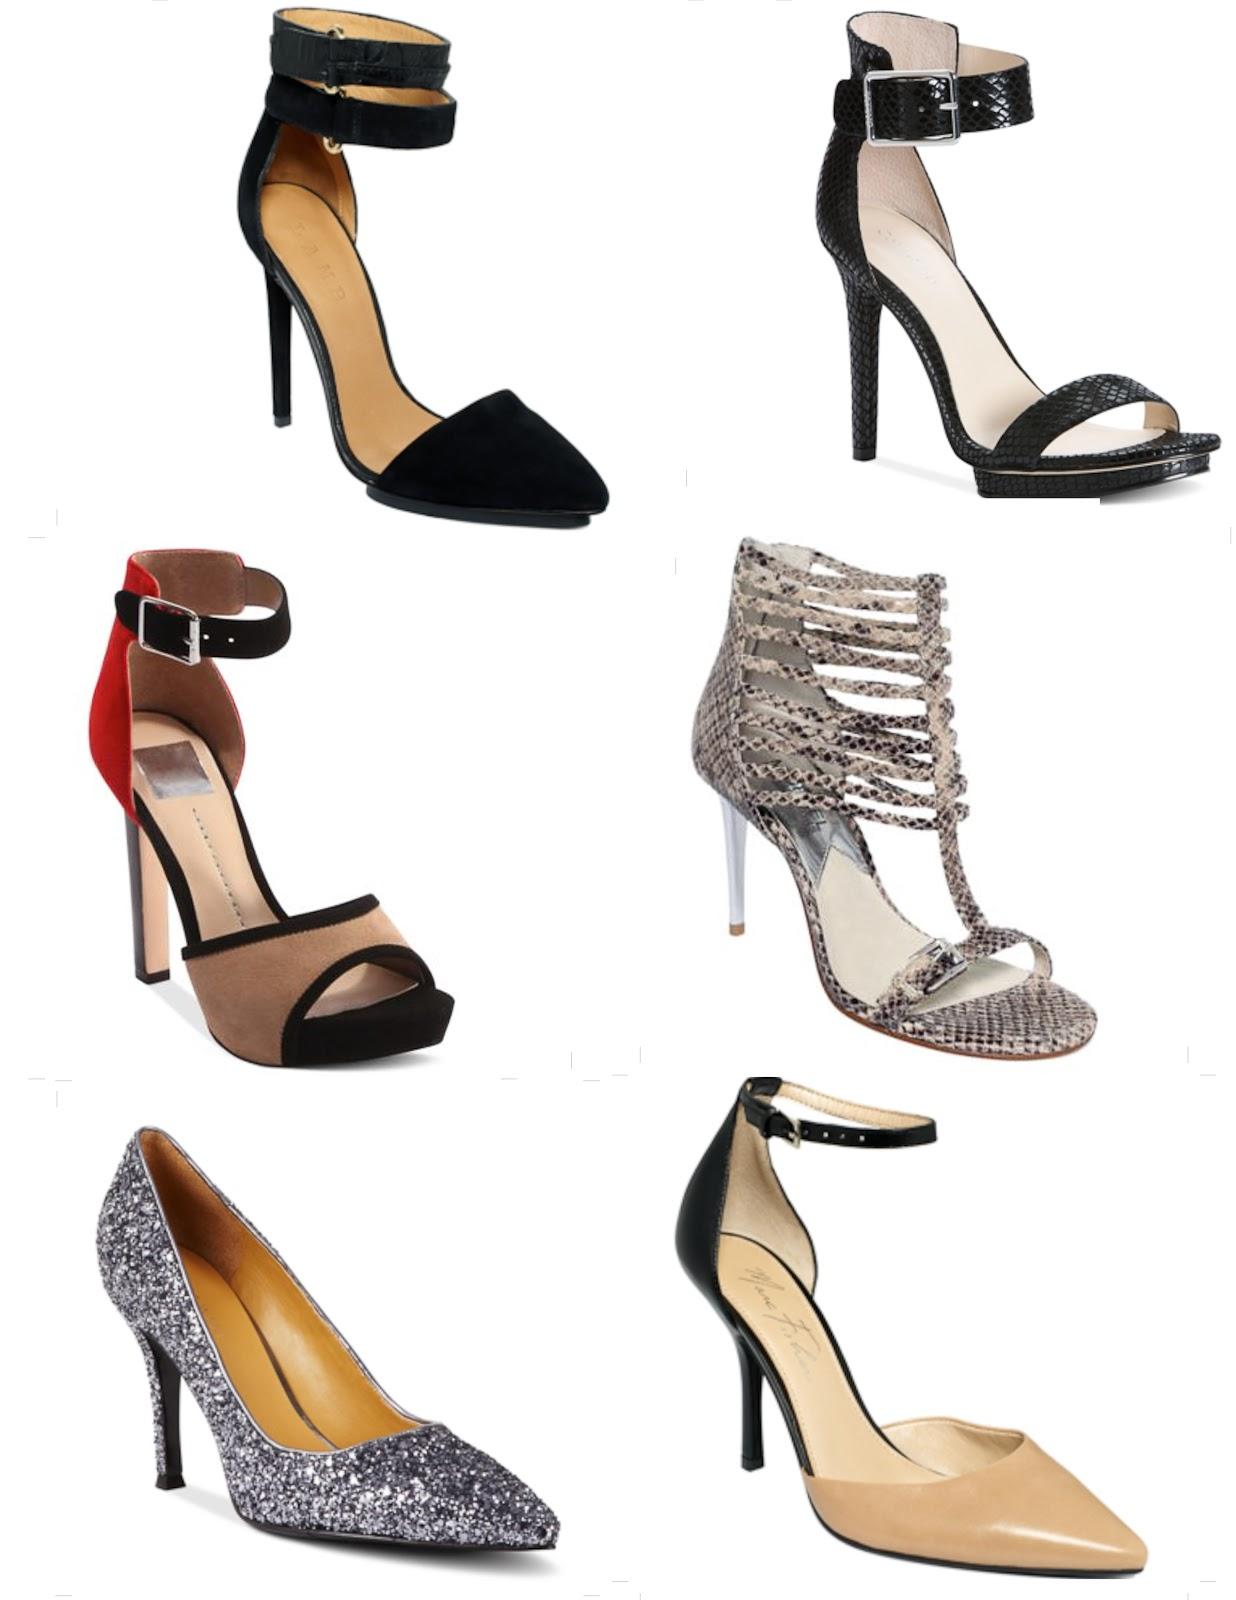 c92d37e7201 ... michael kors womens shoes OFF64 Discounted Source · Buy macy s black  boots OFF66 Discounted